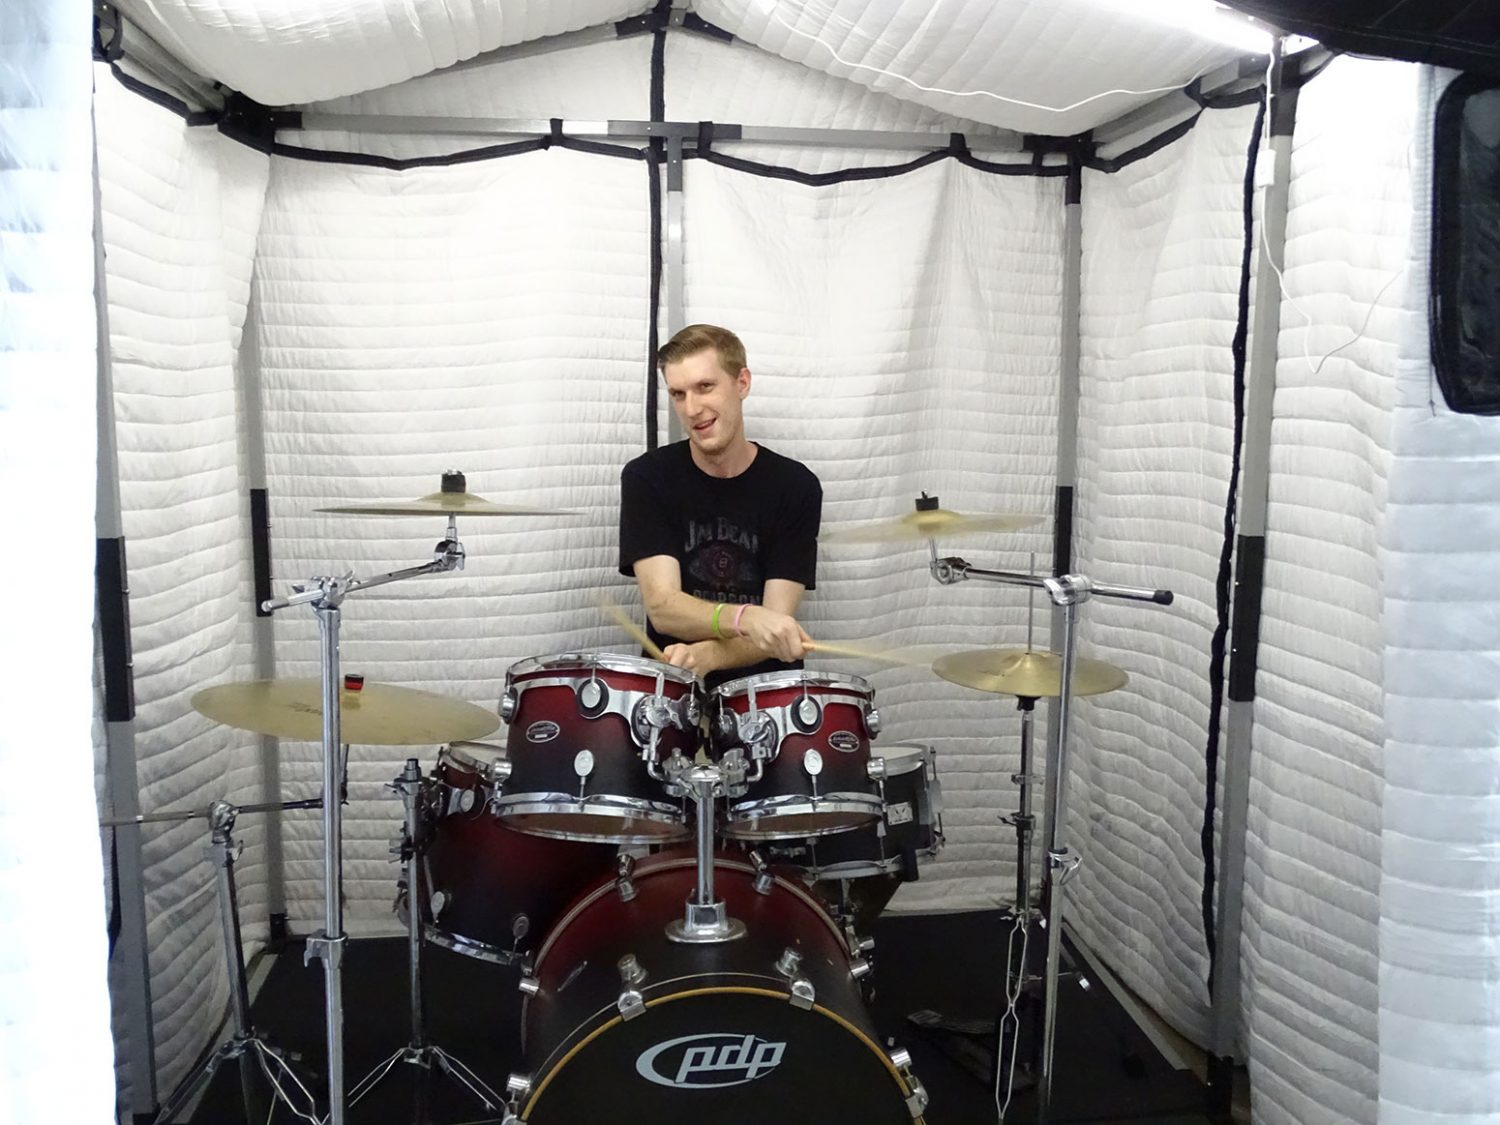 mobile acoustic vocal booth avb66 for audio recording for drummers or music band. Black Bedroom Furniture Sets. Home Design Ideas